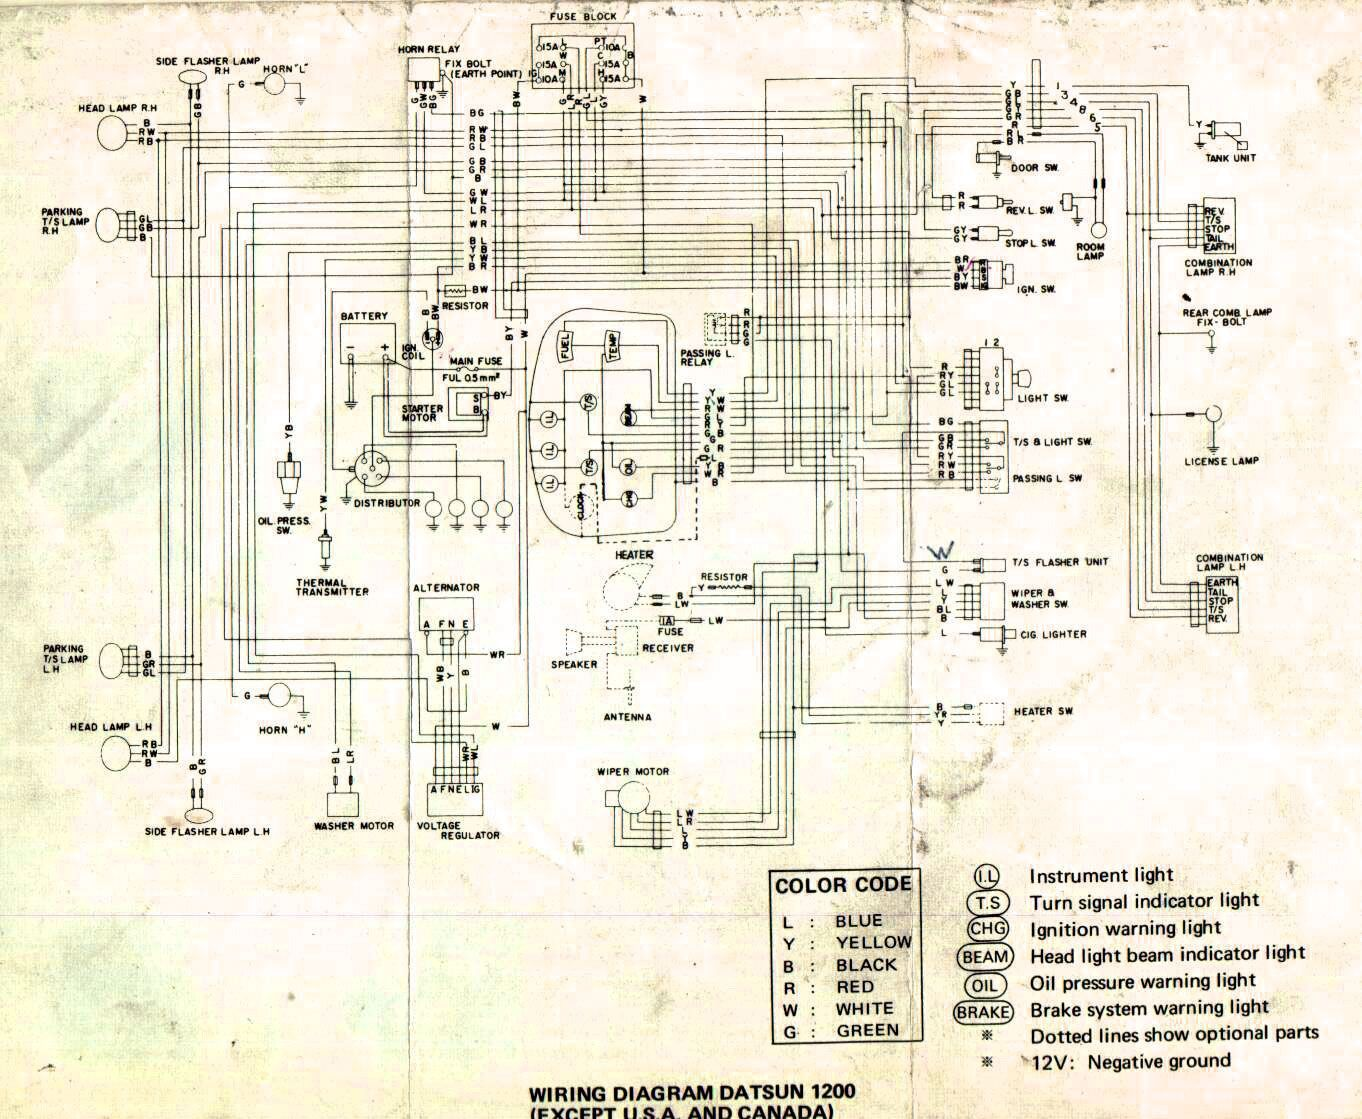 small resolution of nissan 1400 wiring diagram wiring diagram dat nissan 1400 coil wiring diagram nissan 1400 wiring diagram